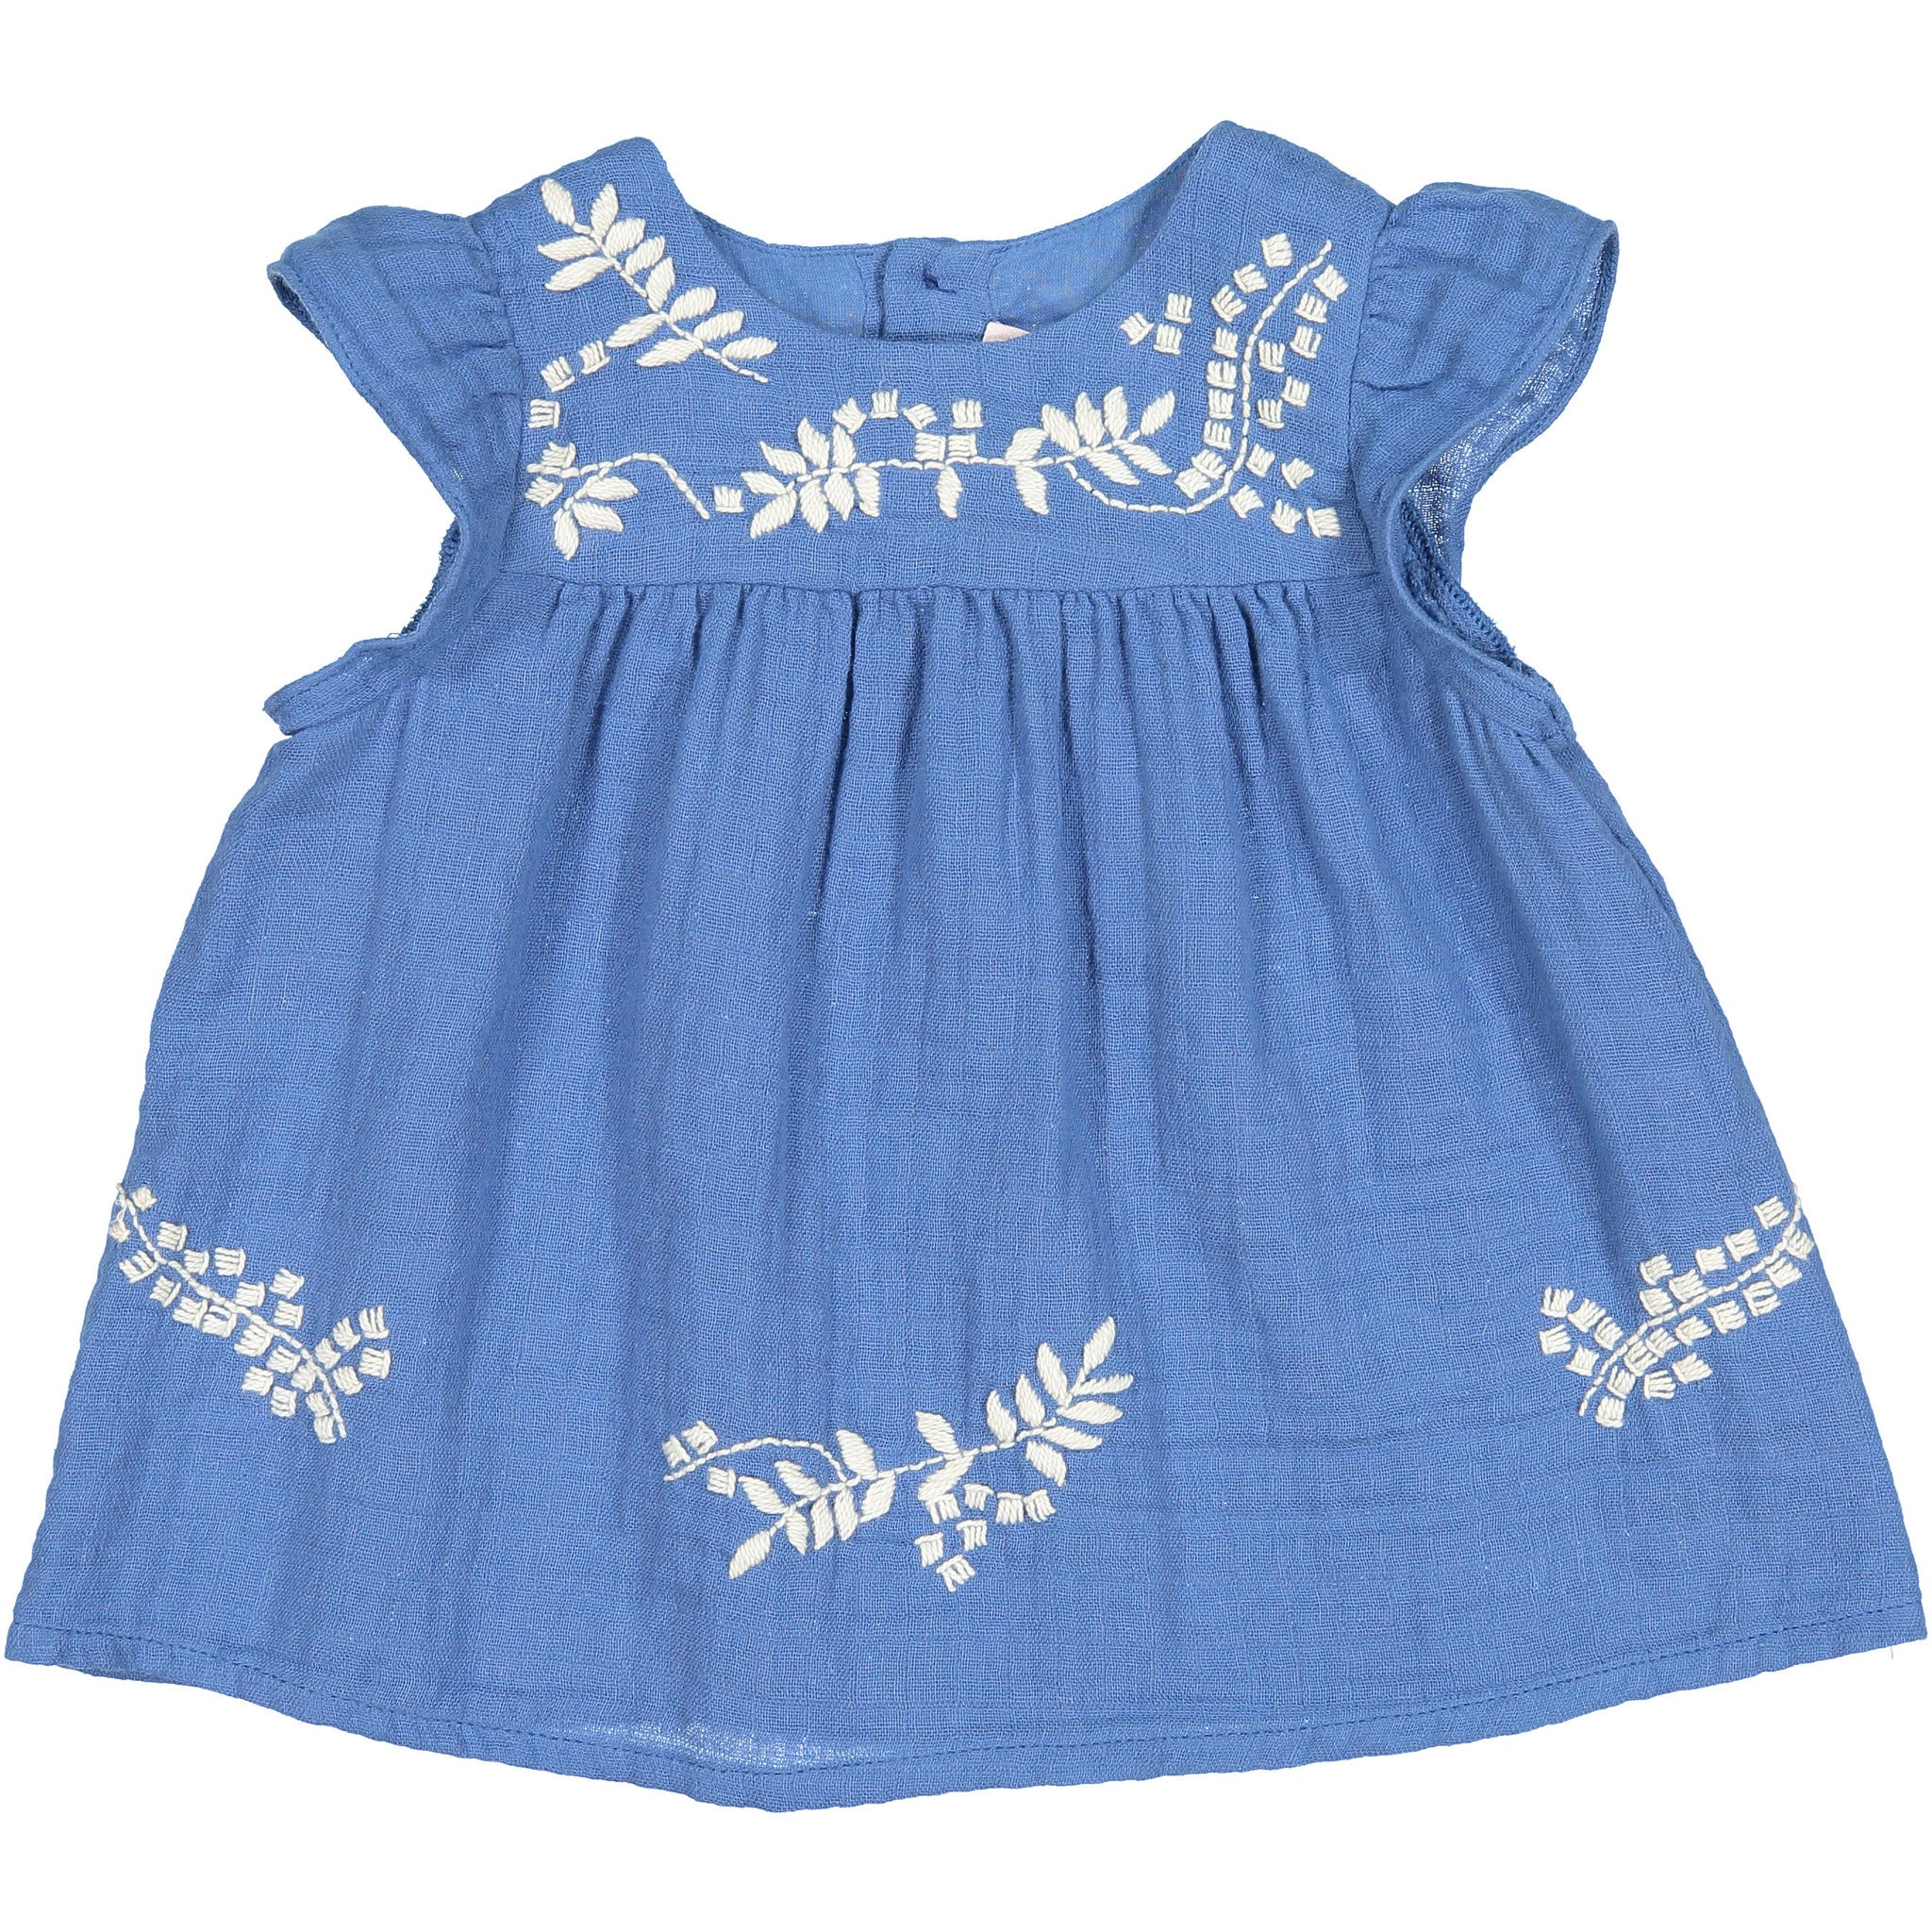 Bonpoint Blue Embroidered Baby Blouse - Ladida